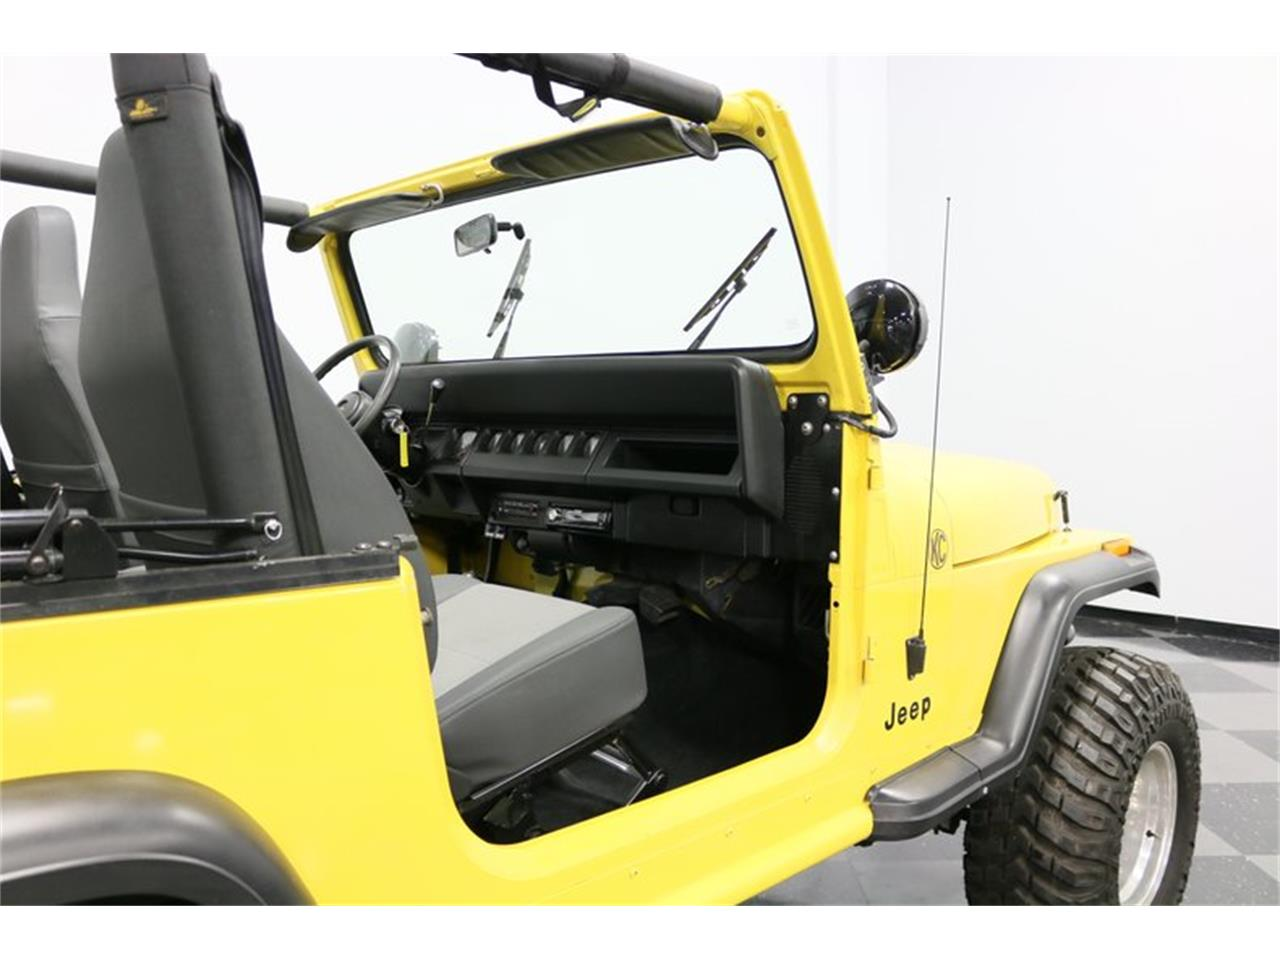 Large Picture of '93 Wrangler located in Ft Worth Texas - $25,995.00 Offered by Streetside Classics - Dallas / Fort Worth - P701